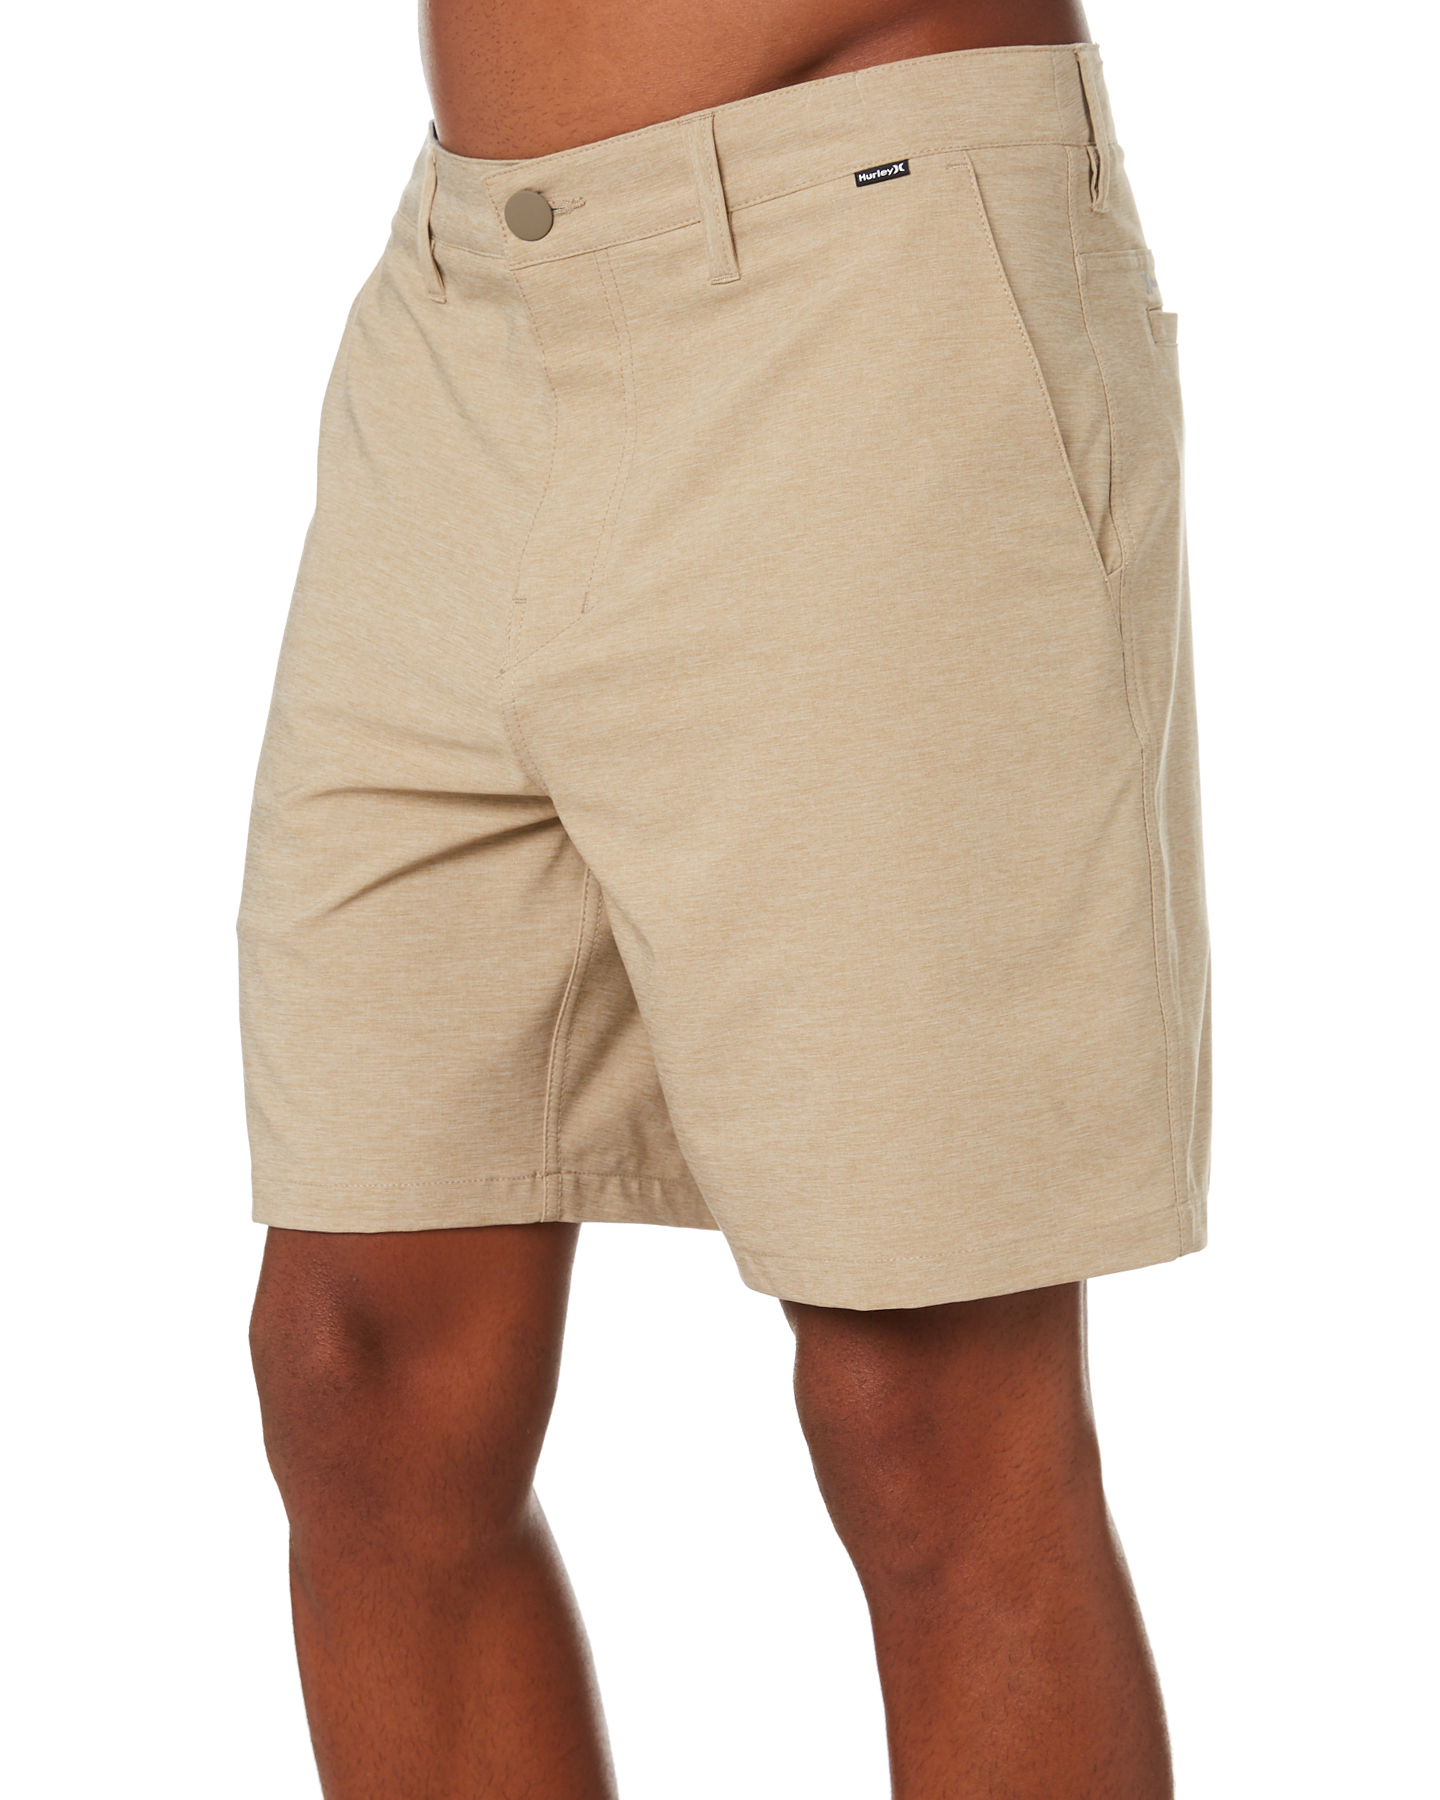 New-Hurley-Men-039-s-Dri-Fit-Chino-Short-21In-Mens-Short-Fitted-Spandex-Grey thumbnail 12